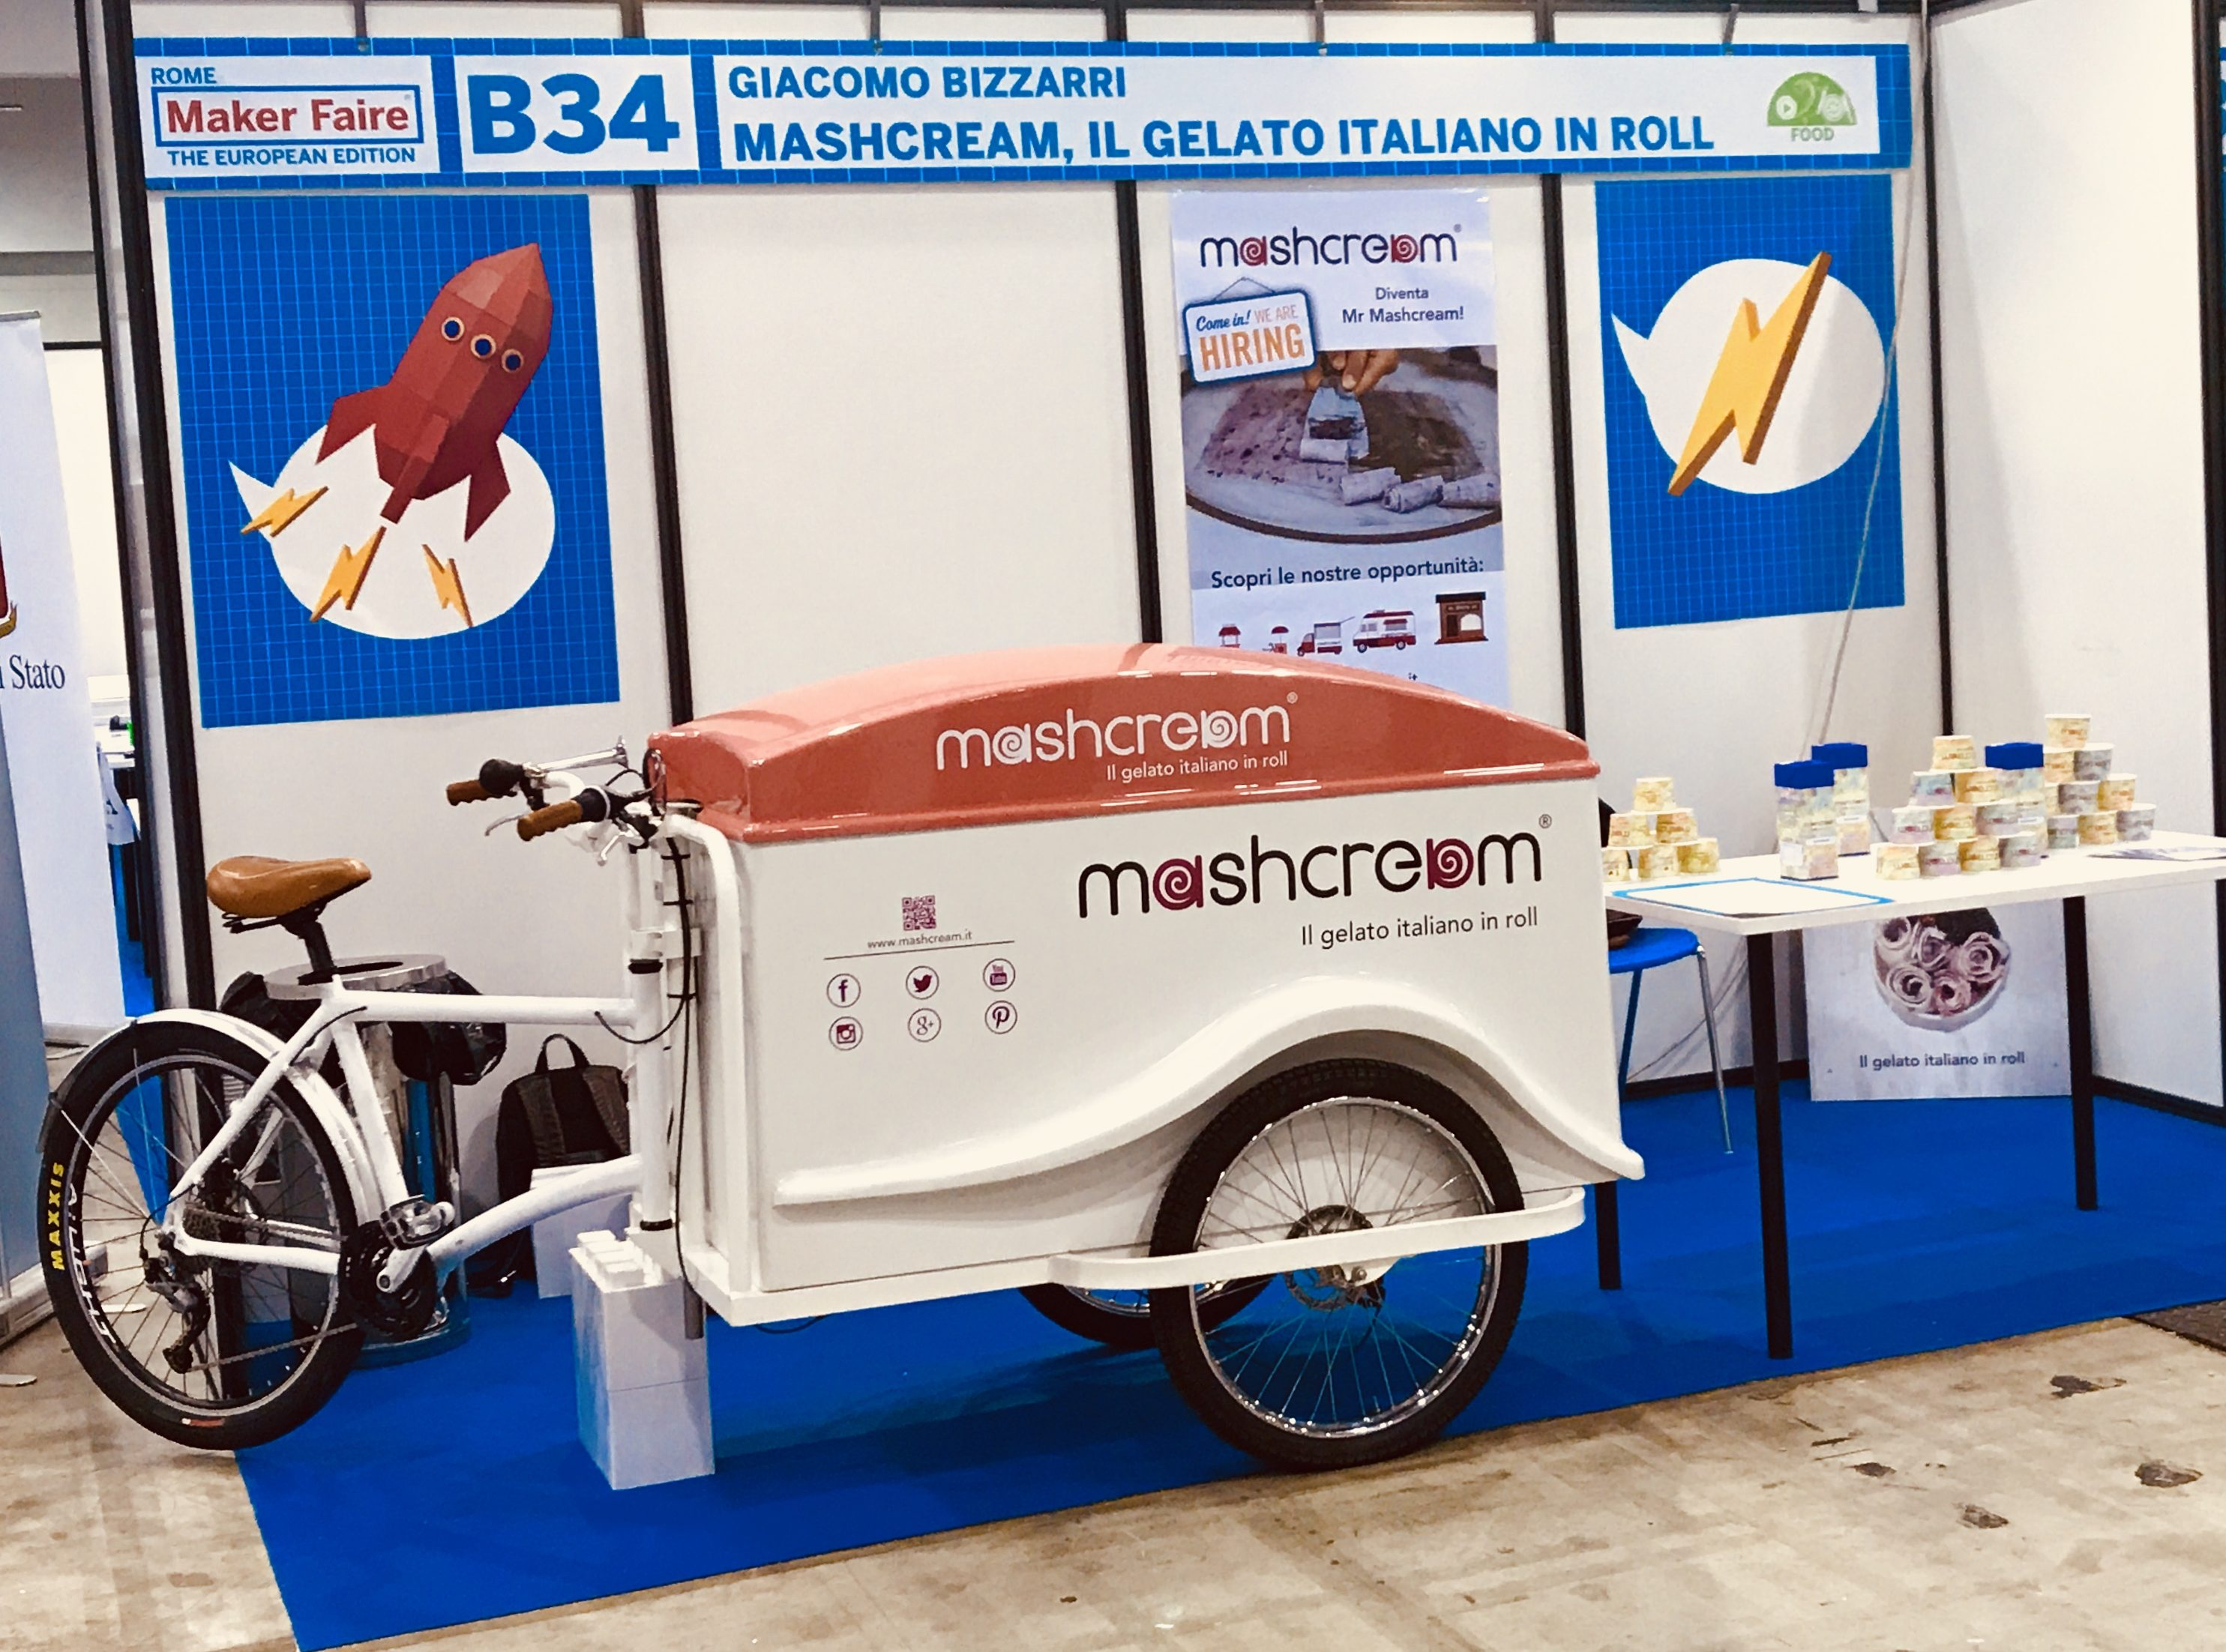 Maker Faire Rome 2017 Mashcream gelato startup innovazione food innovation Fiera Roma